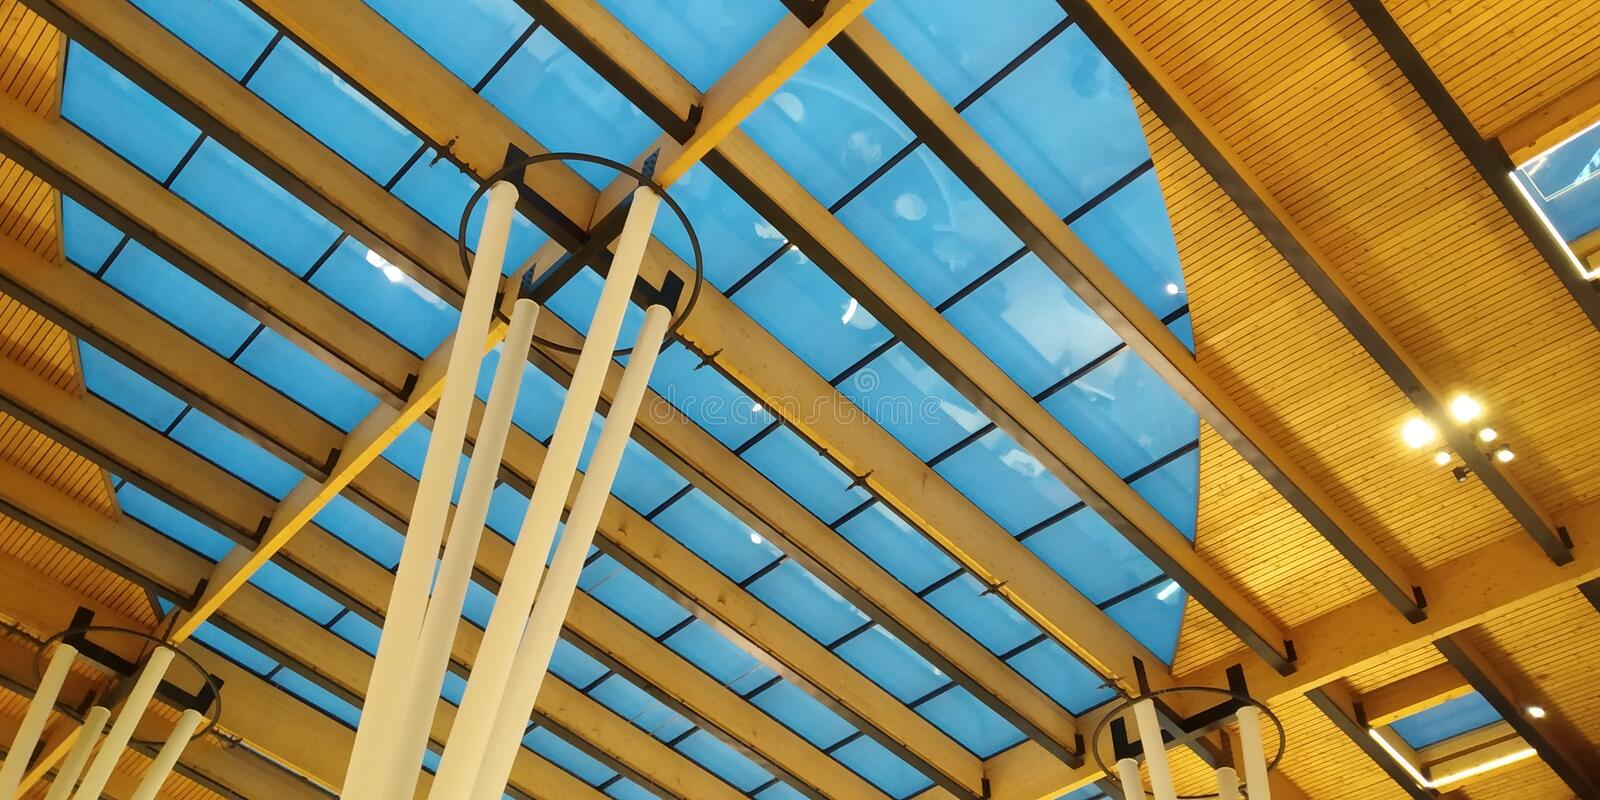 Abstract of modern architecture building interior. With strange angles and glass roof royalty free stock images